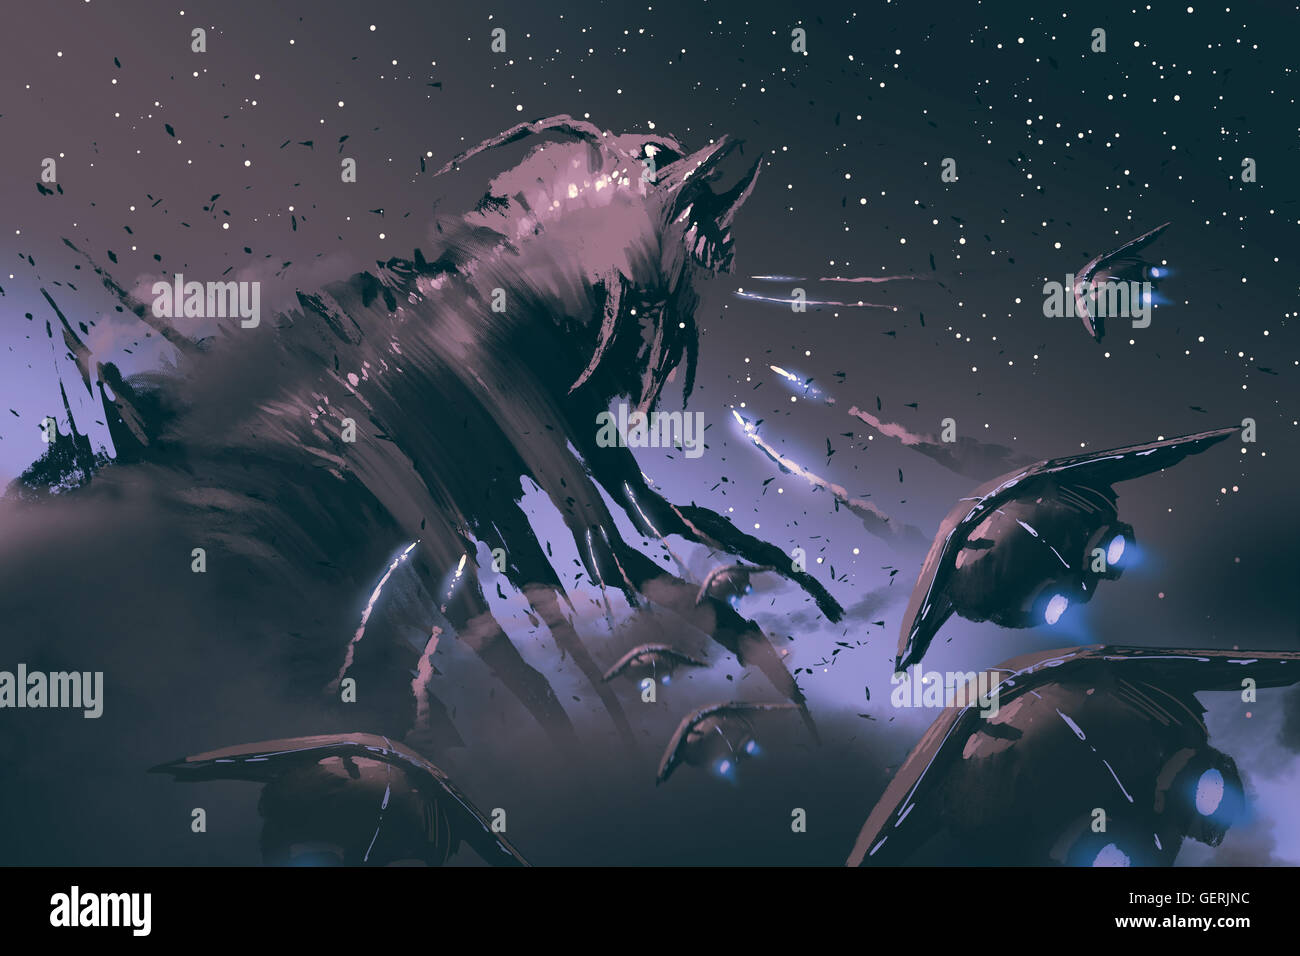 battle between spaceships and  insect creature,sci-fi concept illustration painting - Stock Image